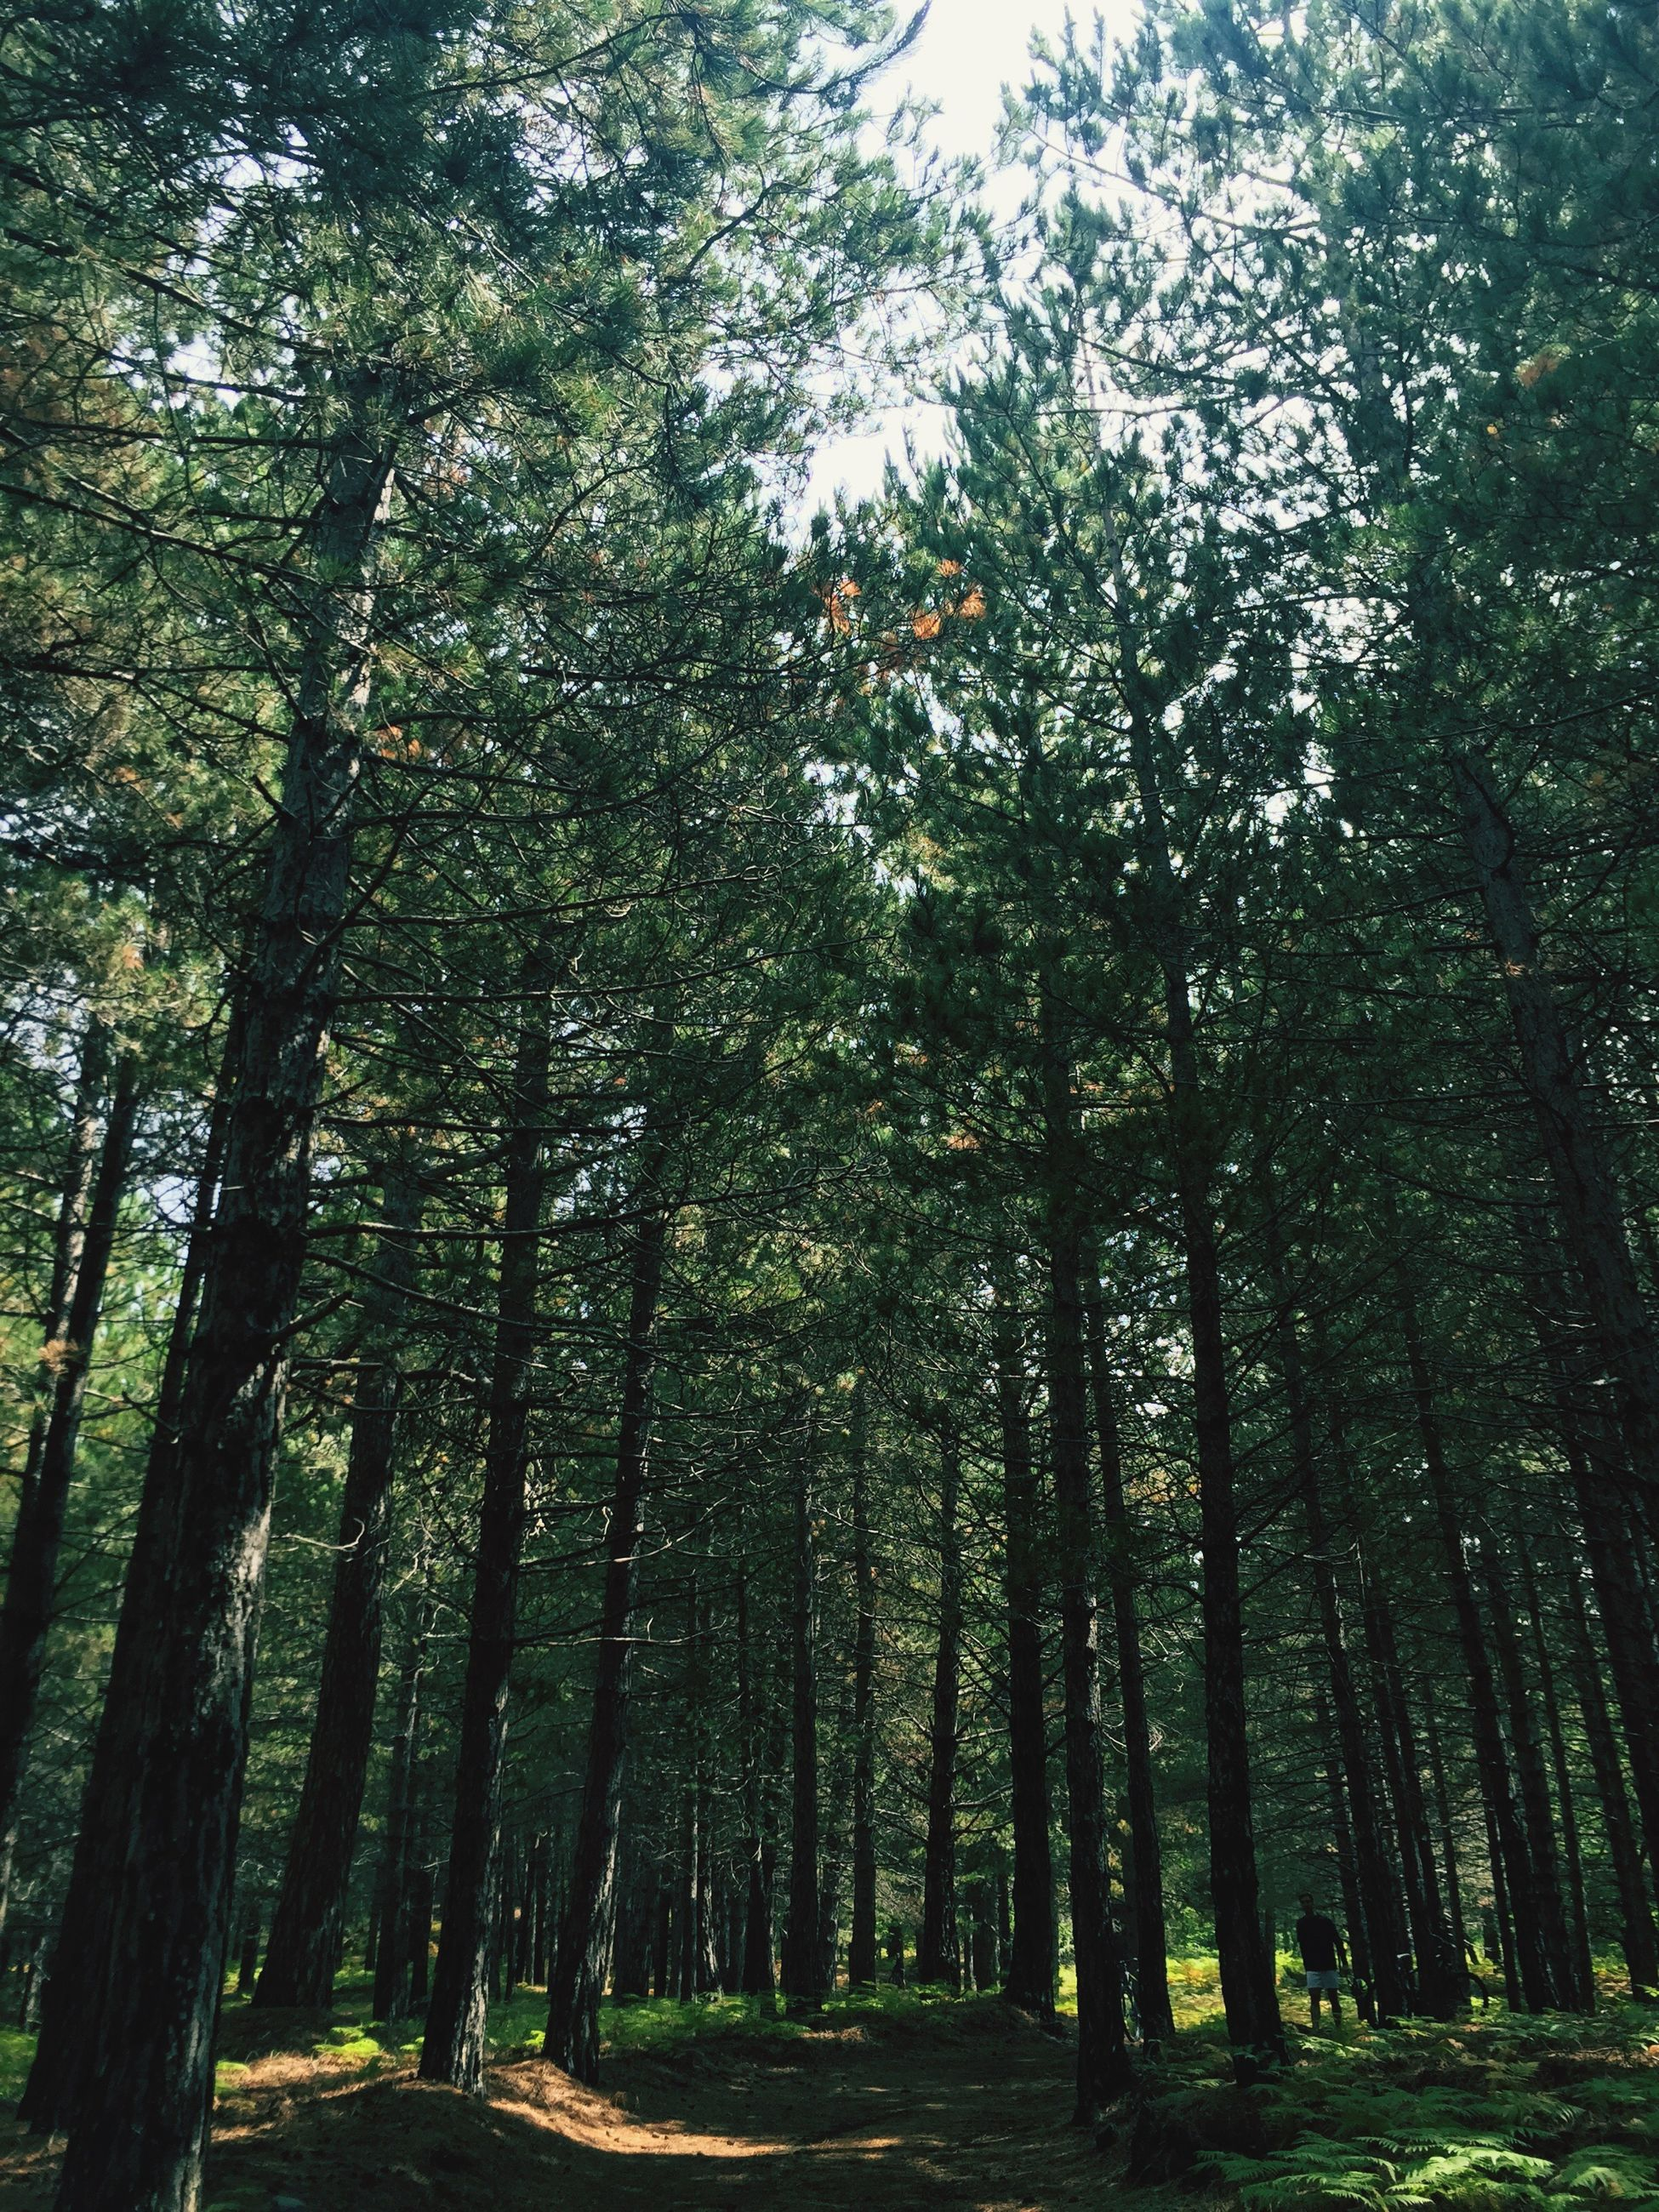 tree, growth, tree trunk, tranquility, nature, green color, tranquil scene, landscape, tall - high, branch, beauty in nature, solitude, scenics, day, non-urban scene, woodland, outdoors, green, freshness, remote, growing, lush foliage, countryside, no people, the way forward, long